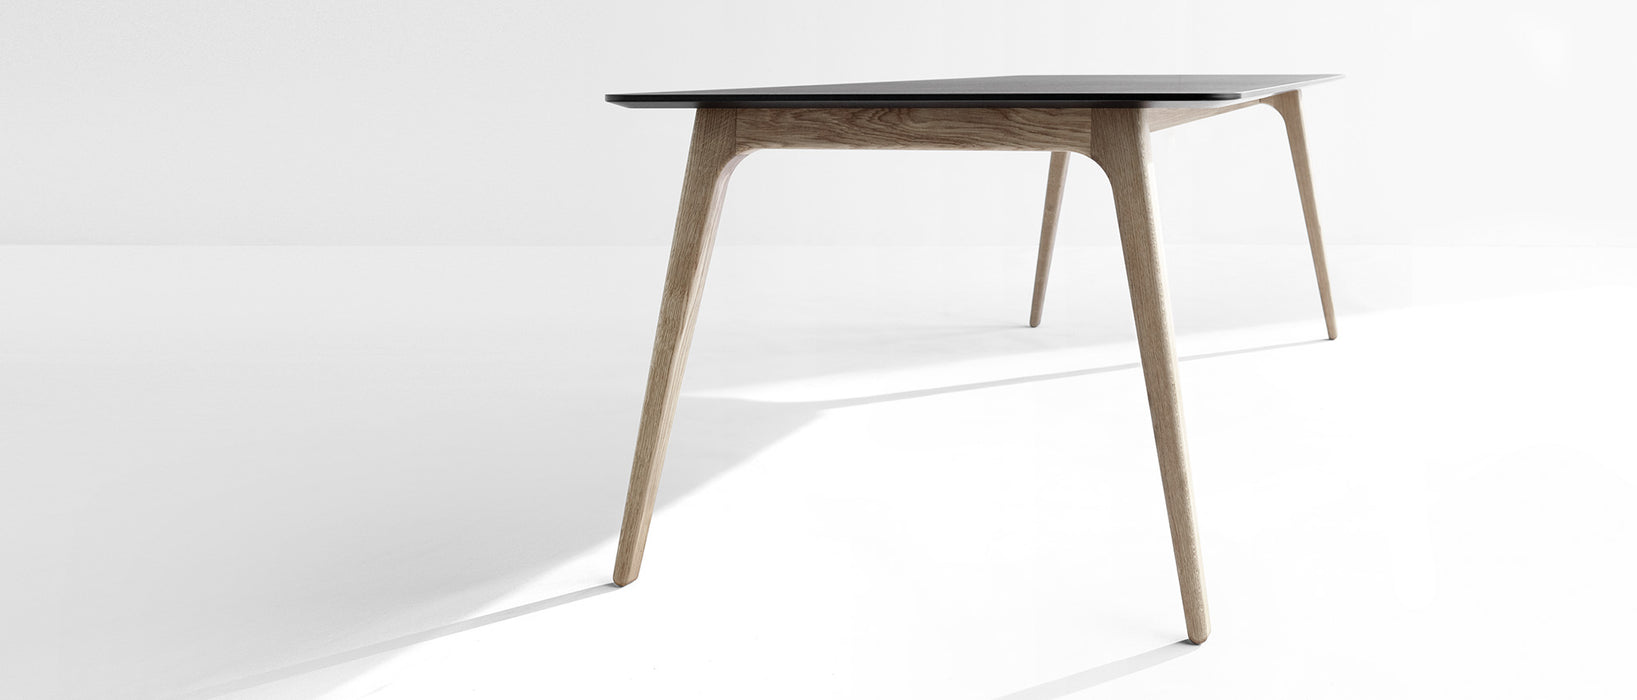 GATE Dining Table 208cm Top and leg detail